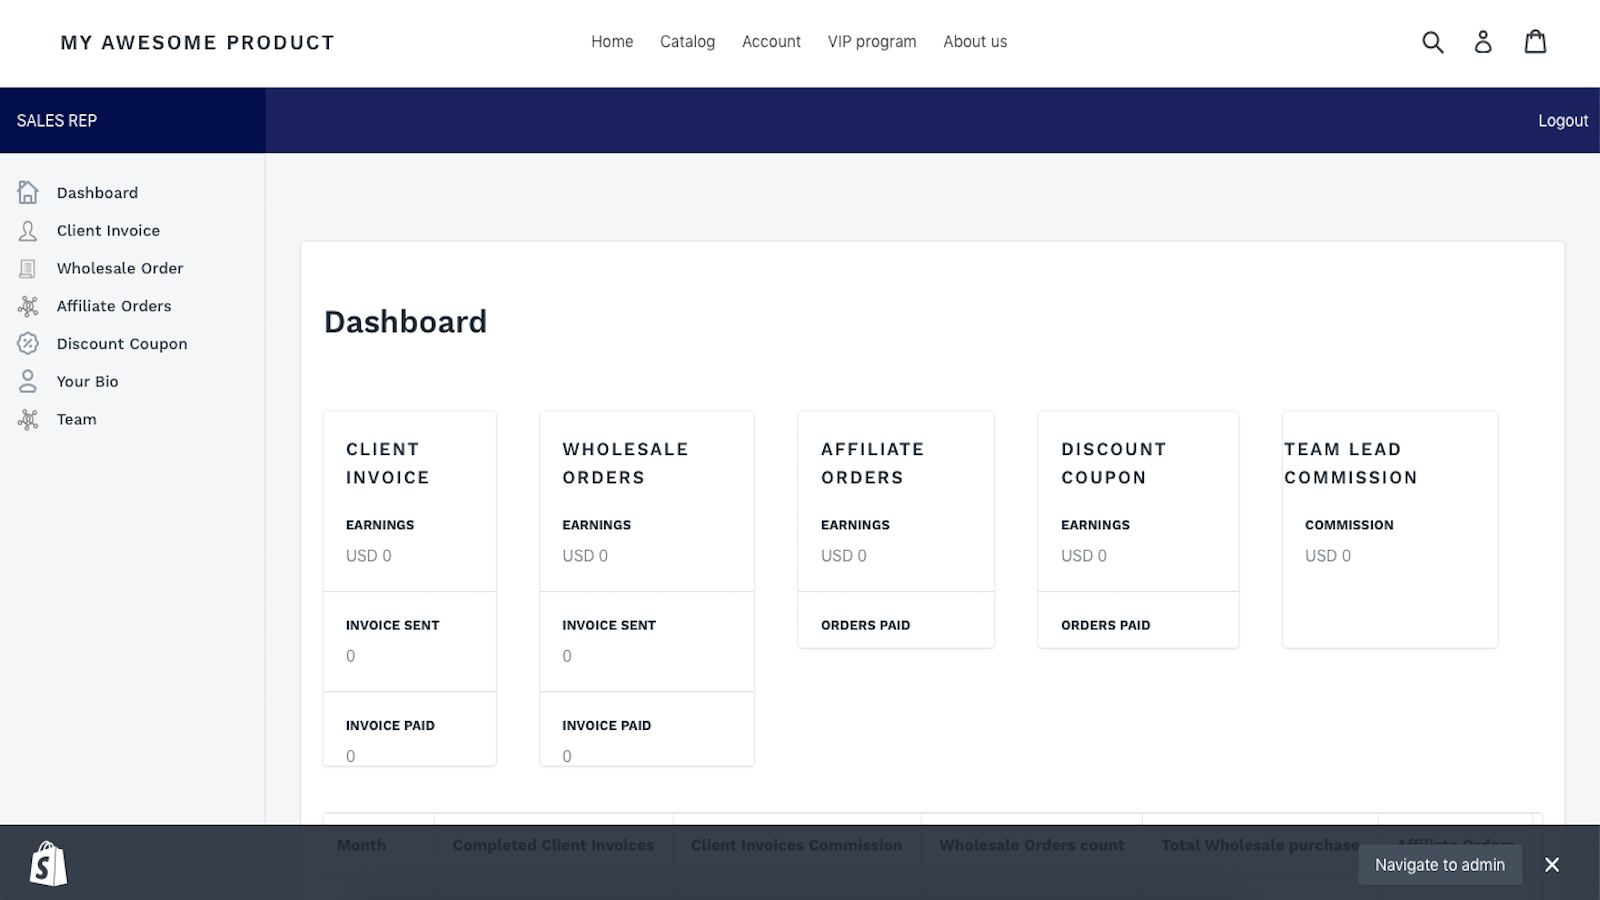 Sales rep back-office dashboard